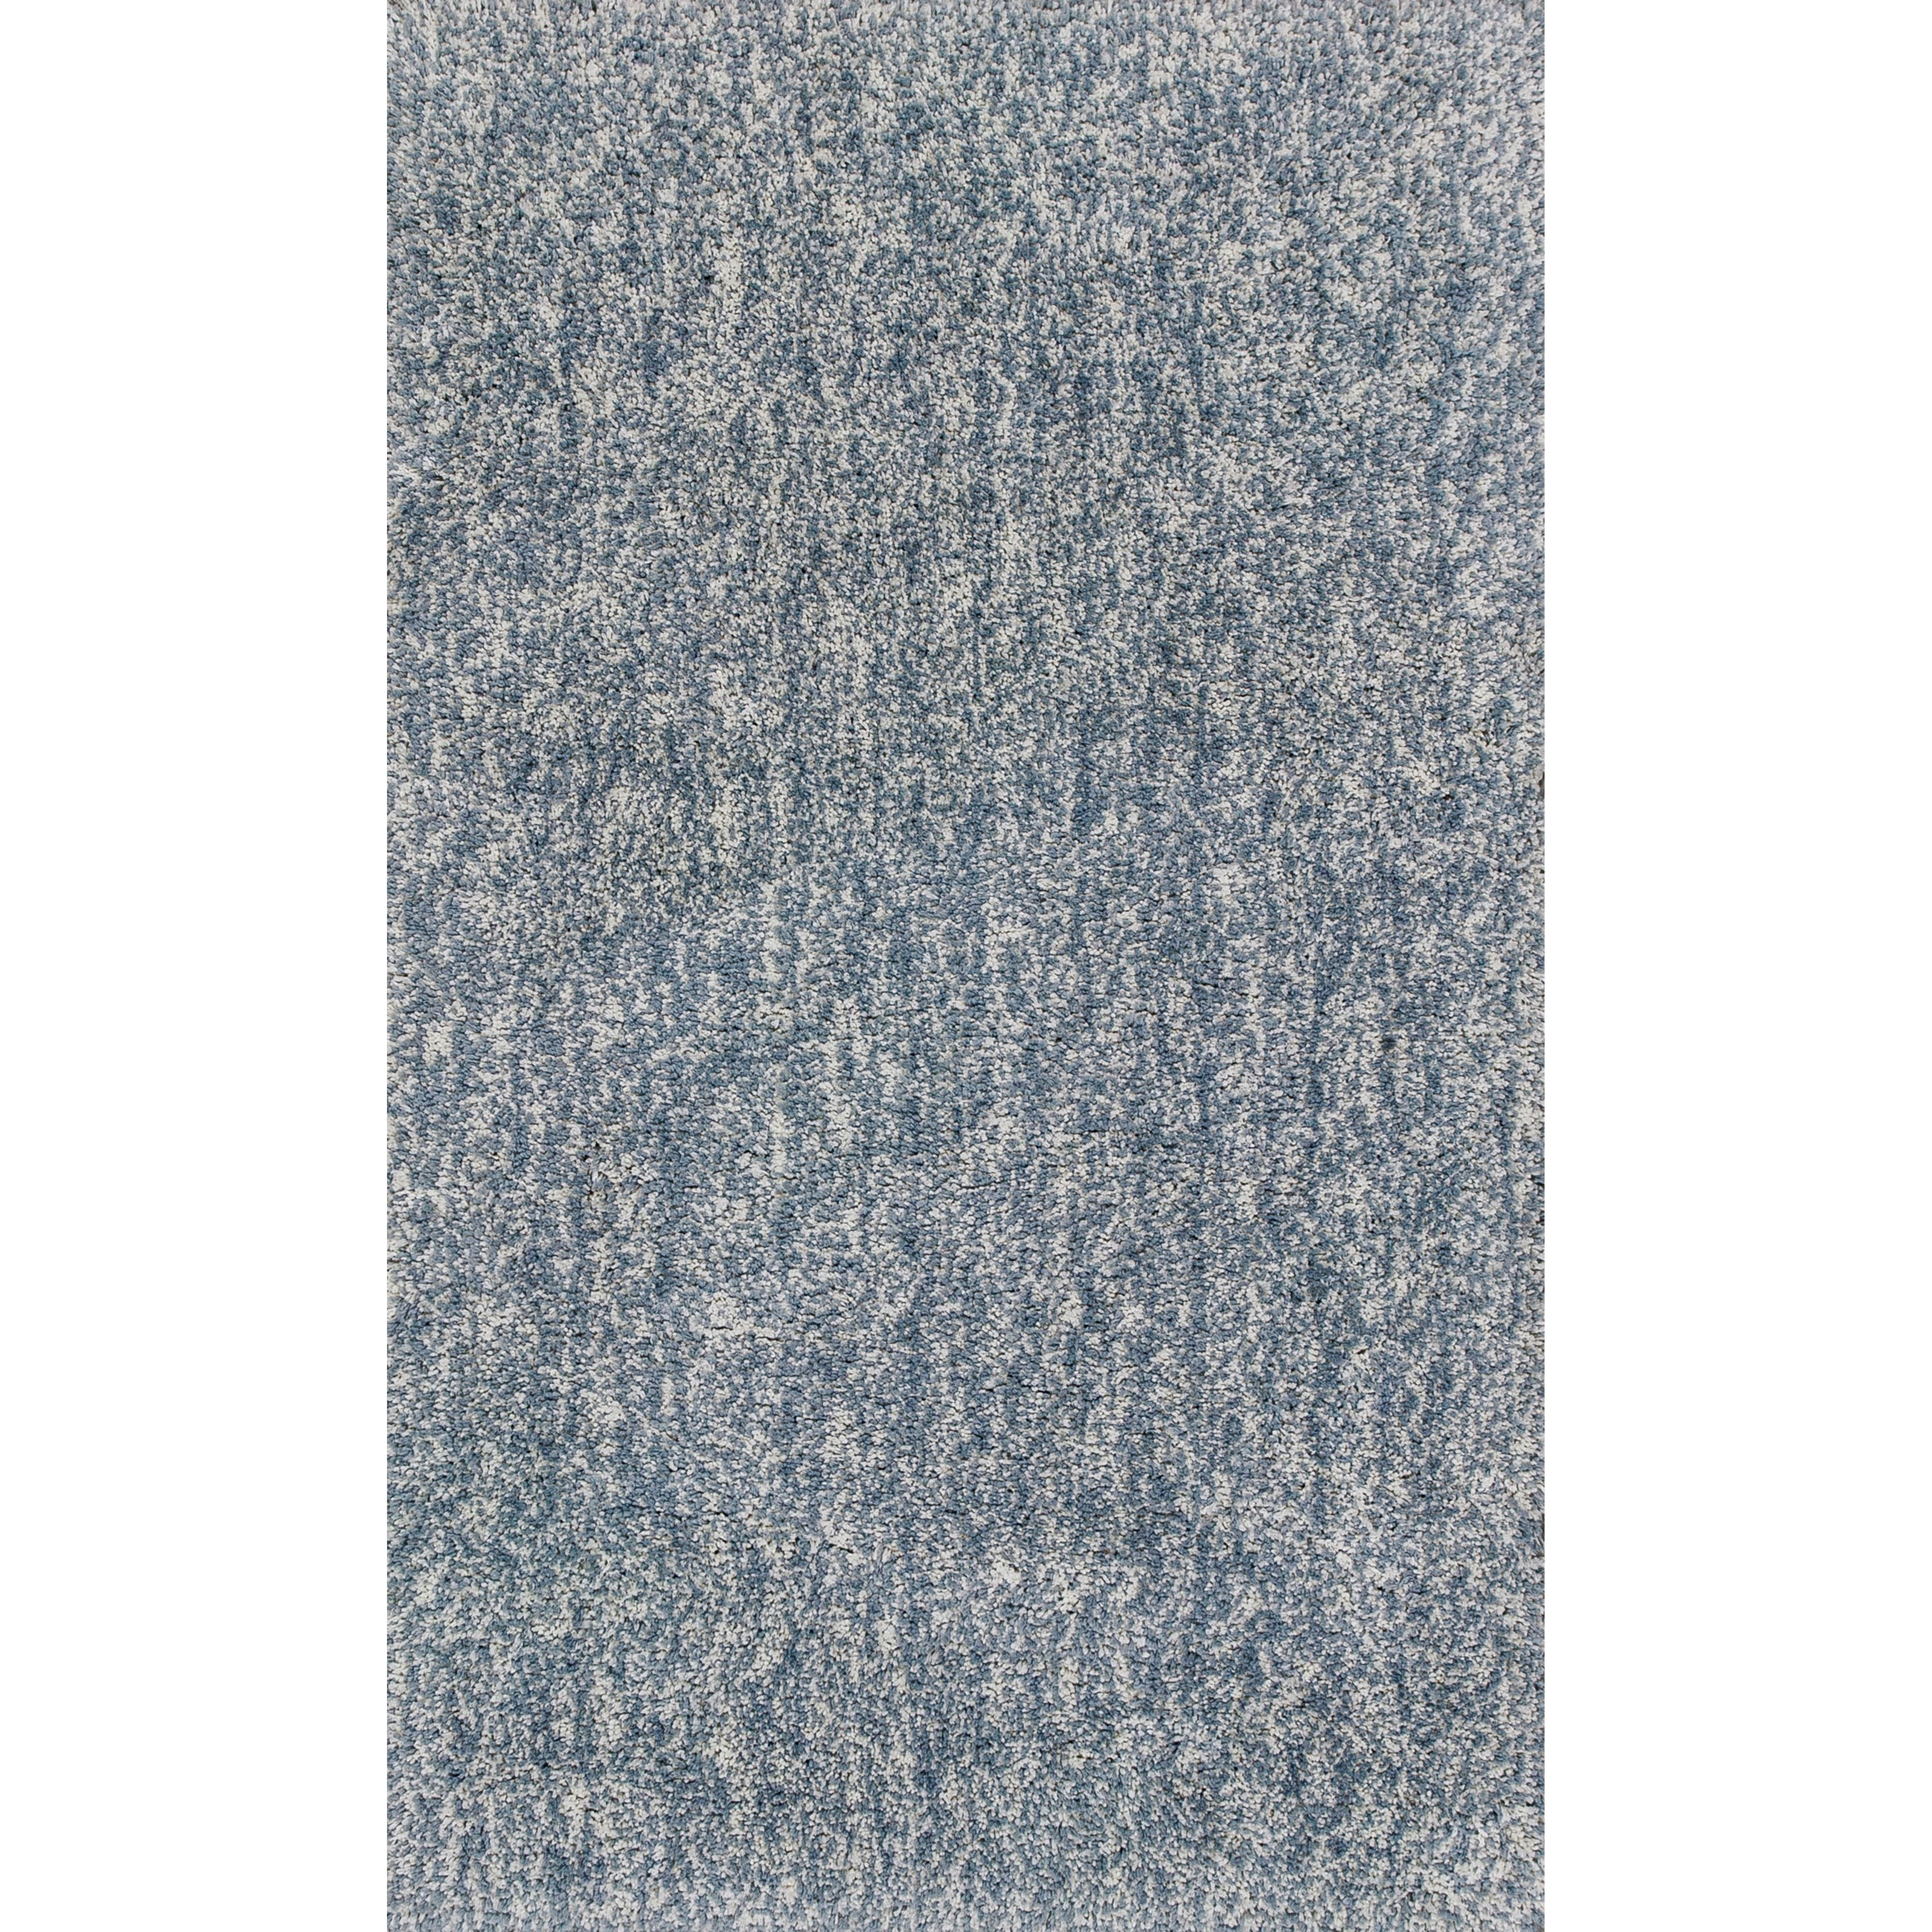 """Bliss 7'6"""" X 9'6"""" Slate Heather Shag Area Rug by Kas at Zak's Home"""